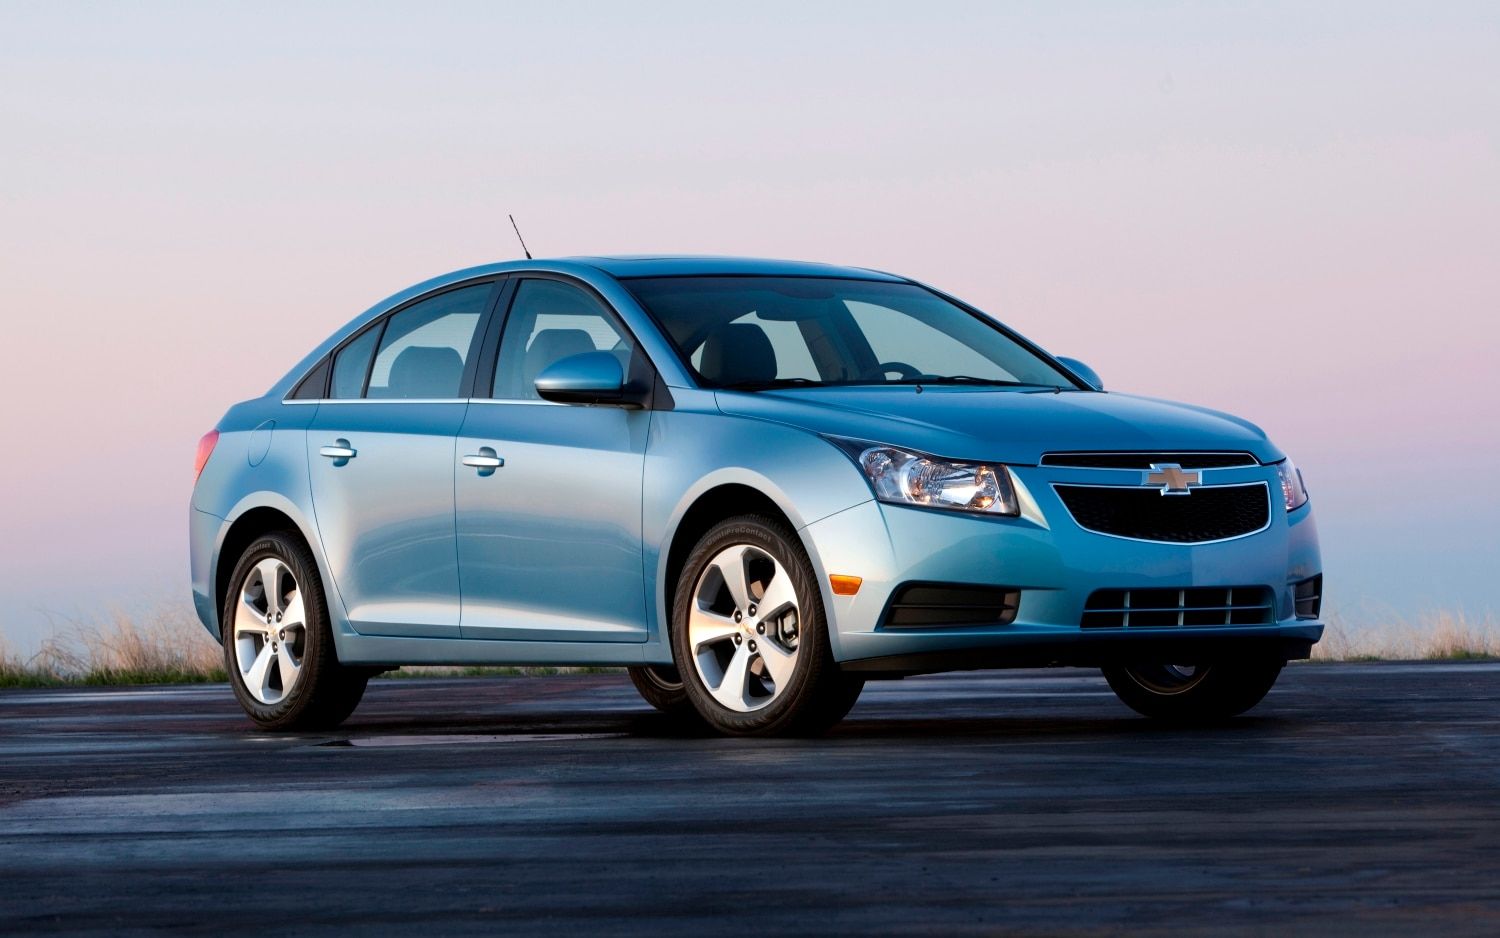 recall central steering wheels prompt recall of 2011 chevrolet cruze. Black Bedroom Furniture Sets. Home Design Ideas